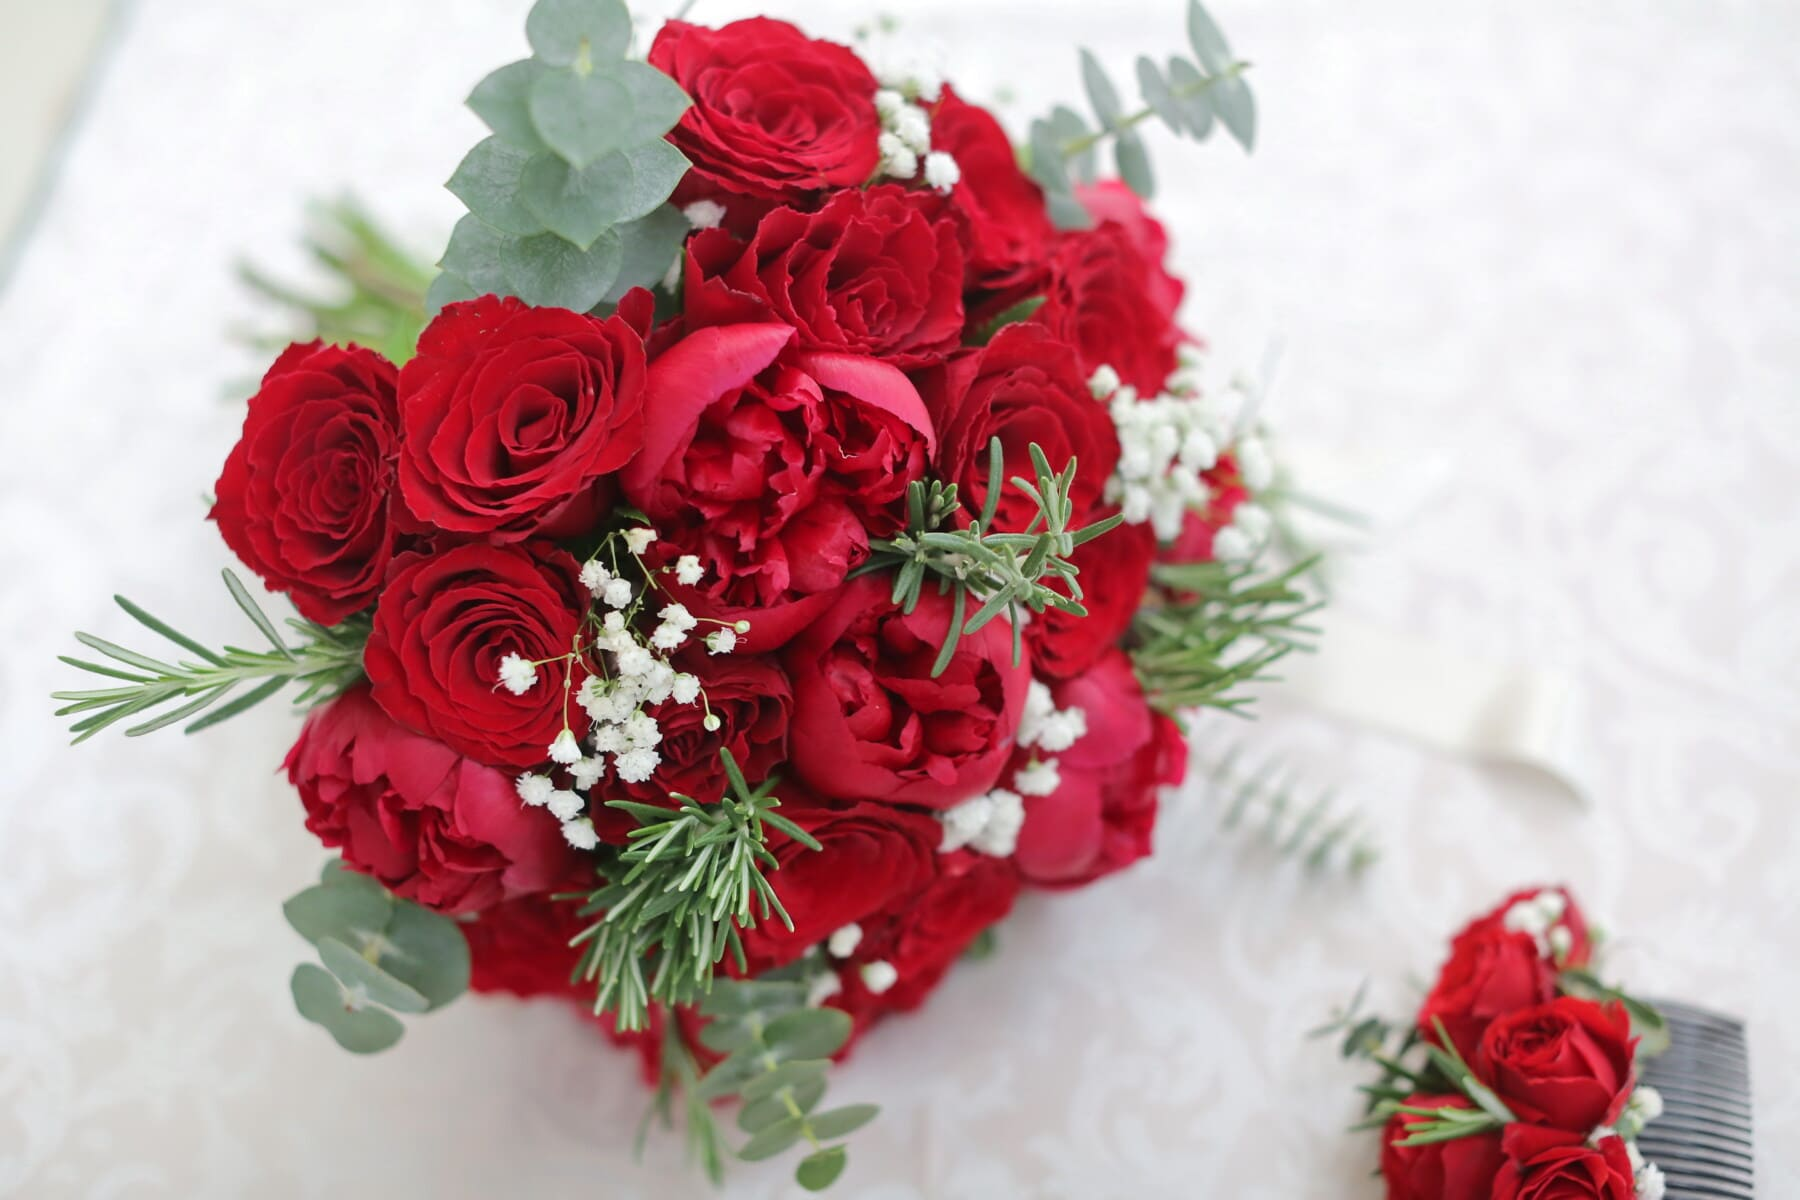 bouquet, Valentine's day, passion, gift, romance, roses, celebration, arrangement, decoration, flower